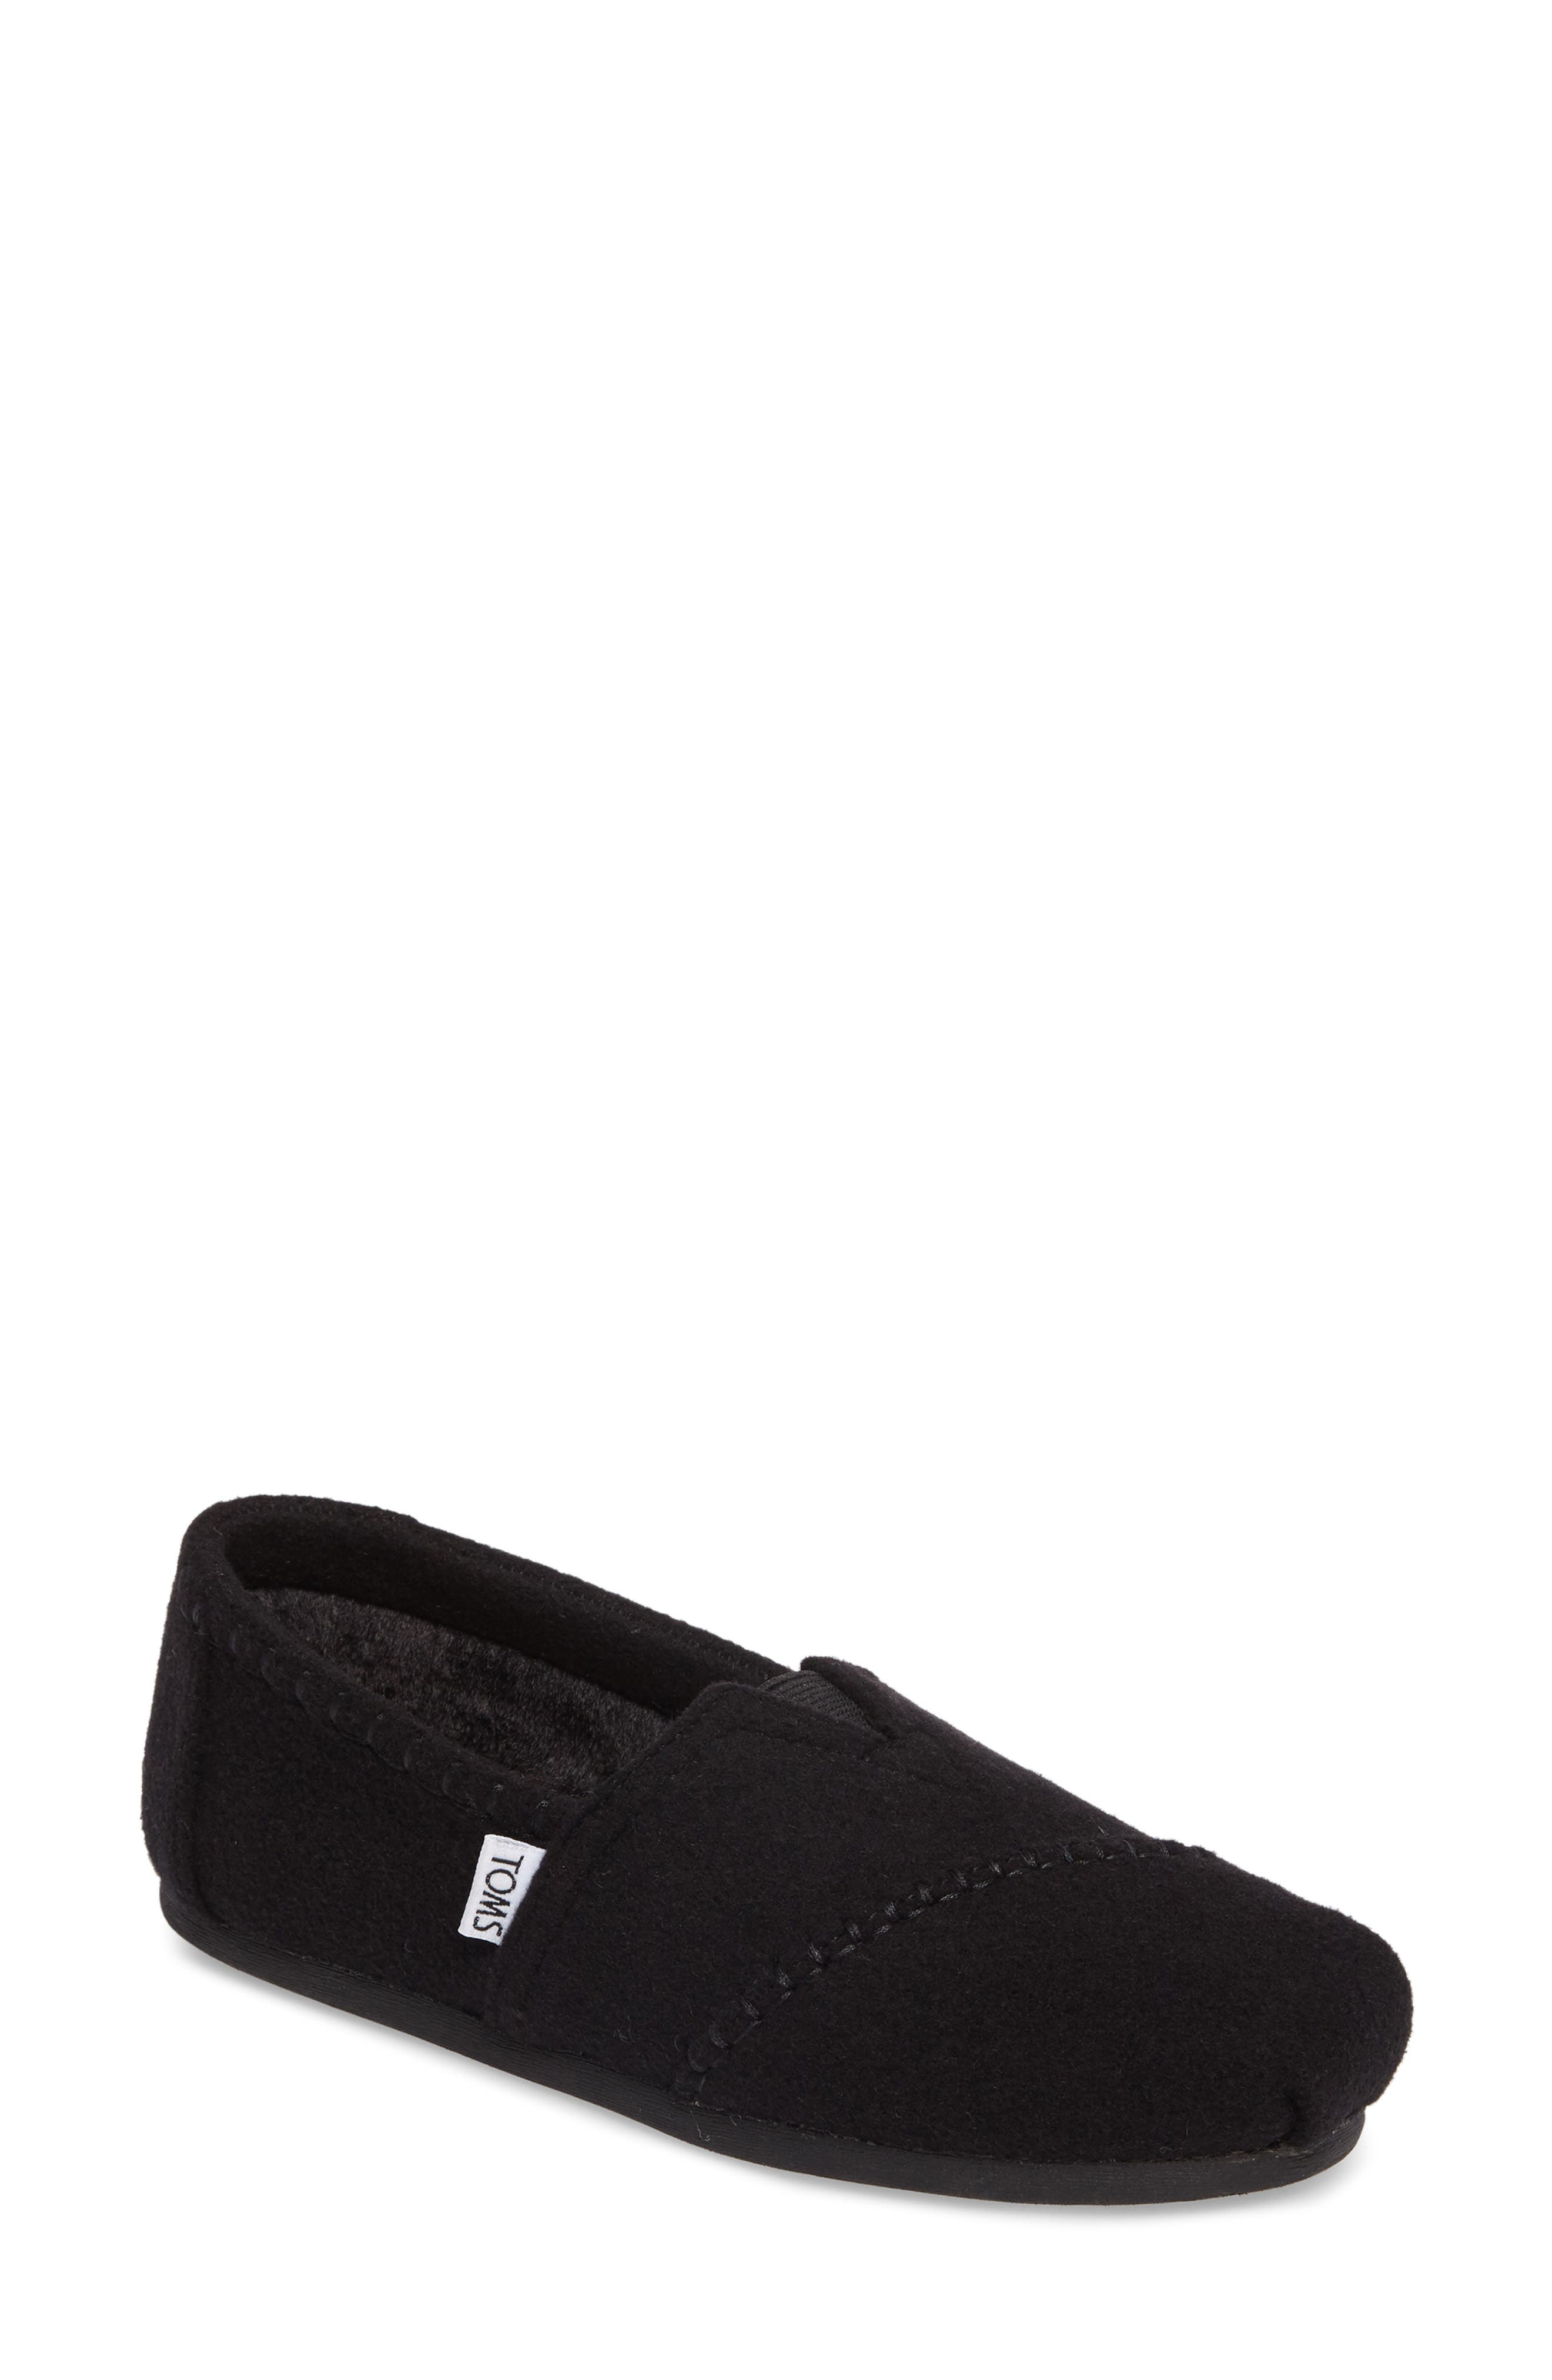 'Classic Knit' Slip-On,                         Main,                         color, 002